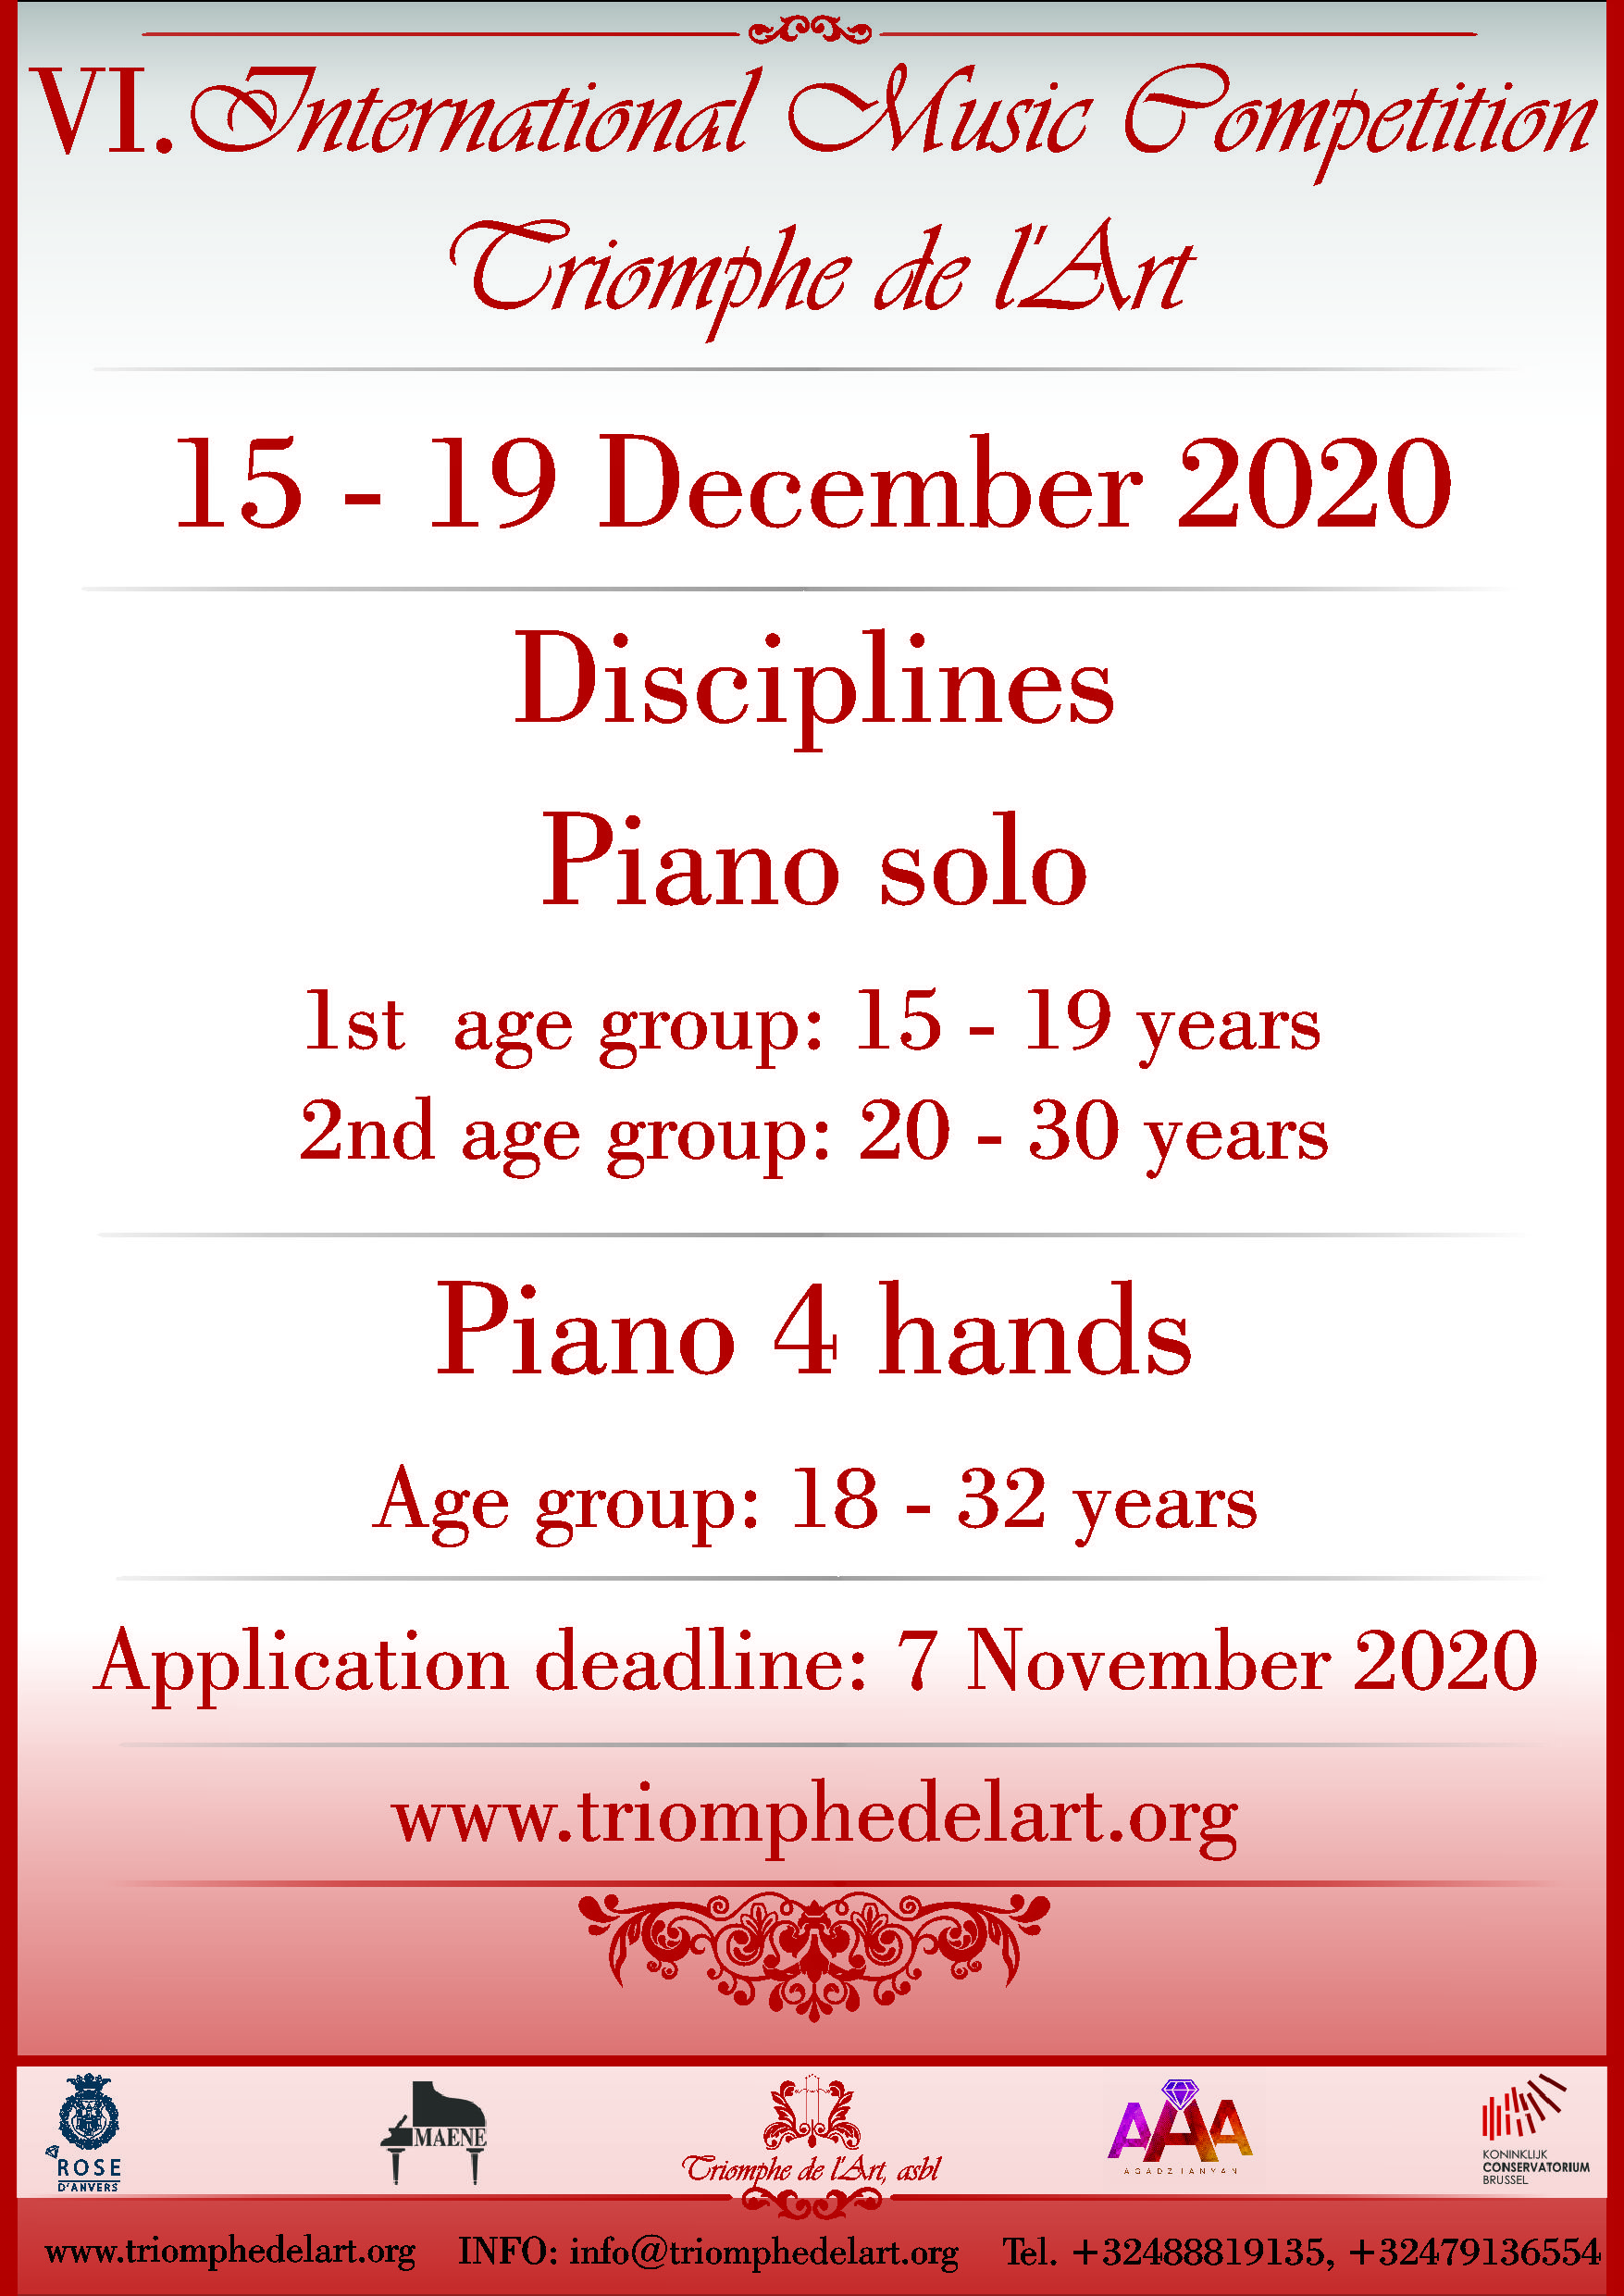 6th International Music Competition Triomphe de l'Art in discipline Piano